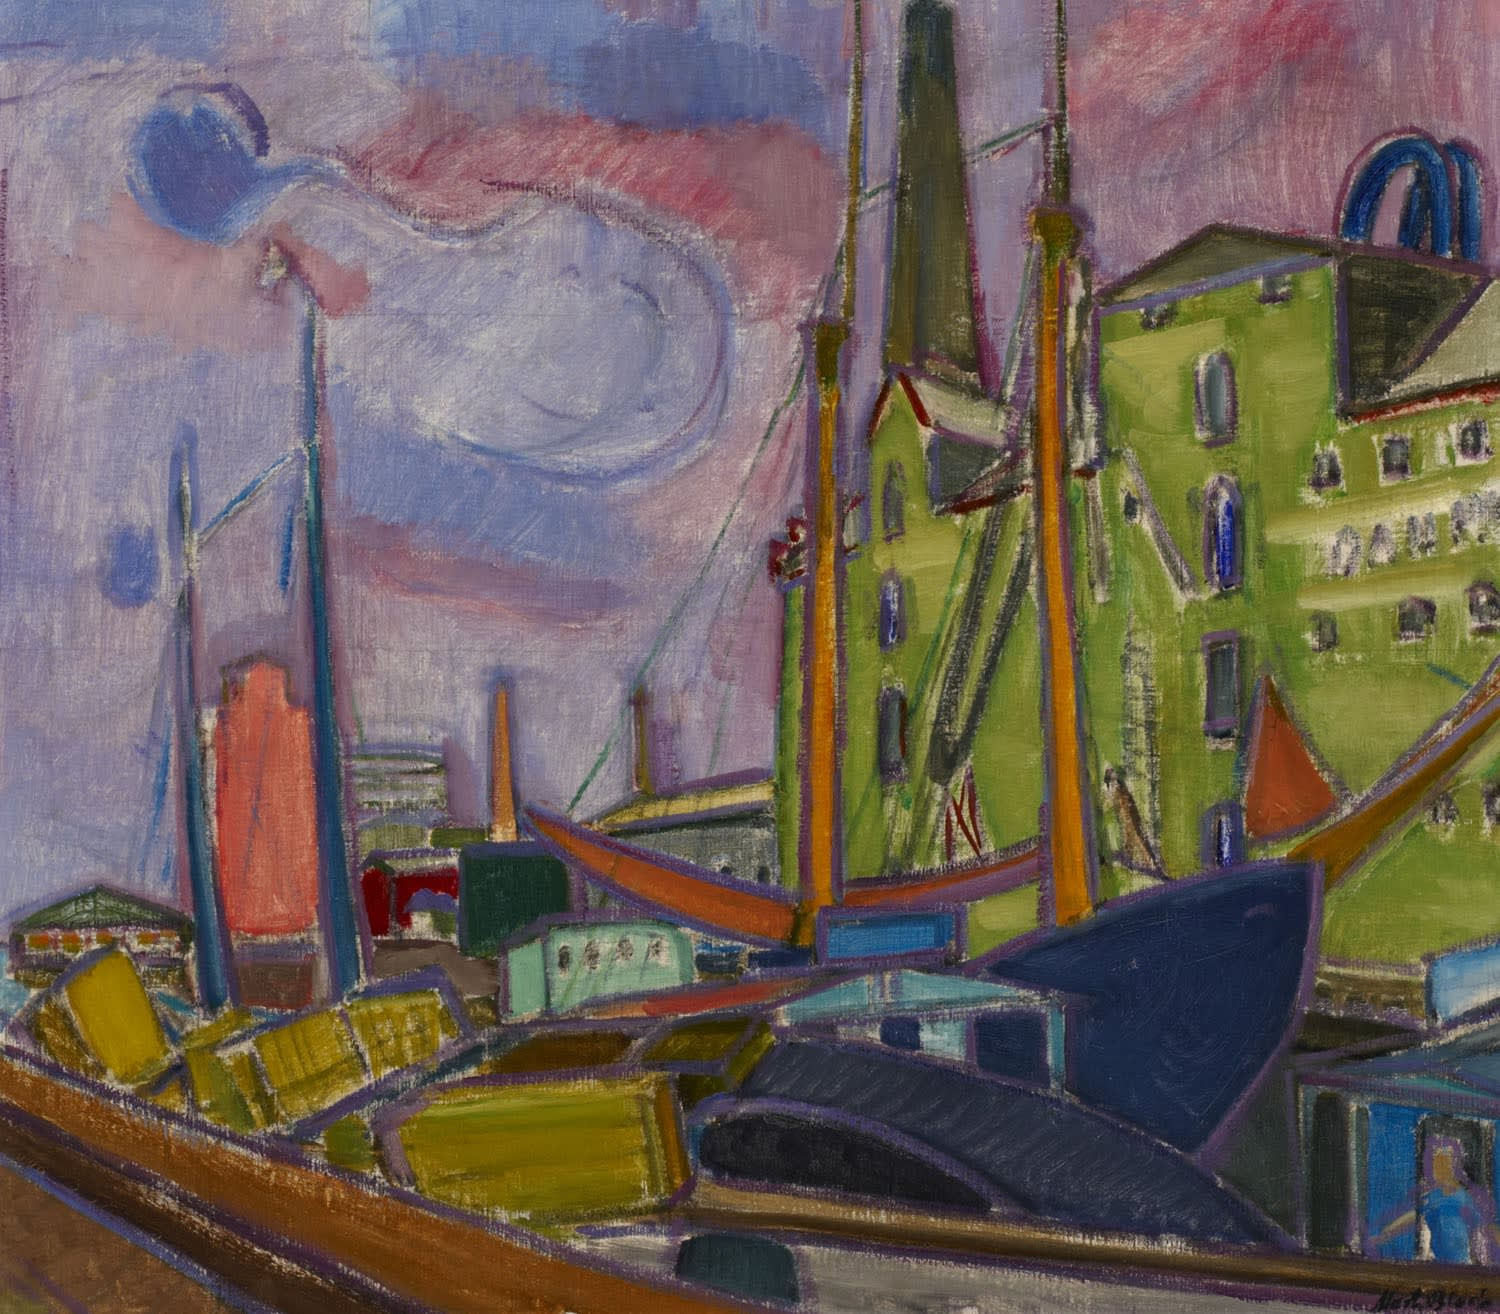 Martin Bloch (1883-1954) Svendborg Harbour, Denmark 1934 Oil on canvas on board 69 x 79 cm Ben Uri Collection © Martin Bloch Trust